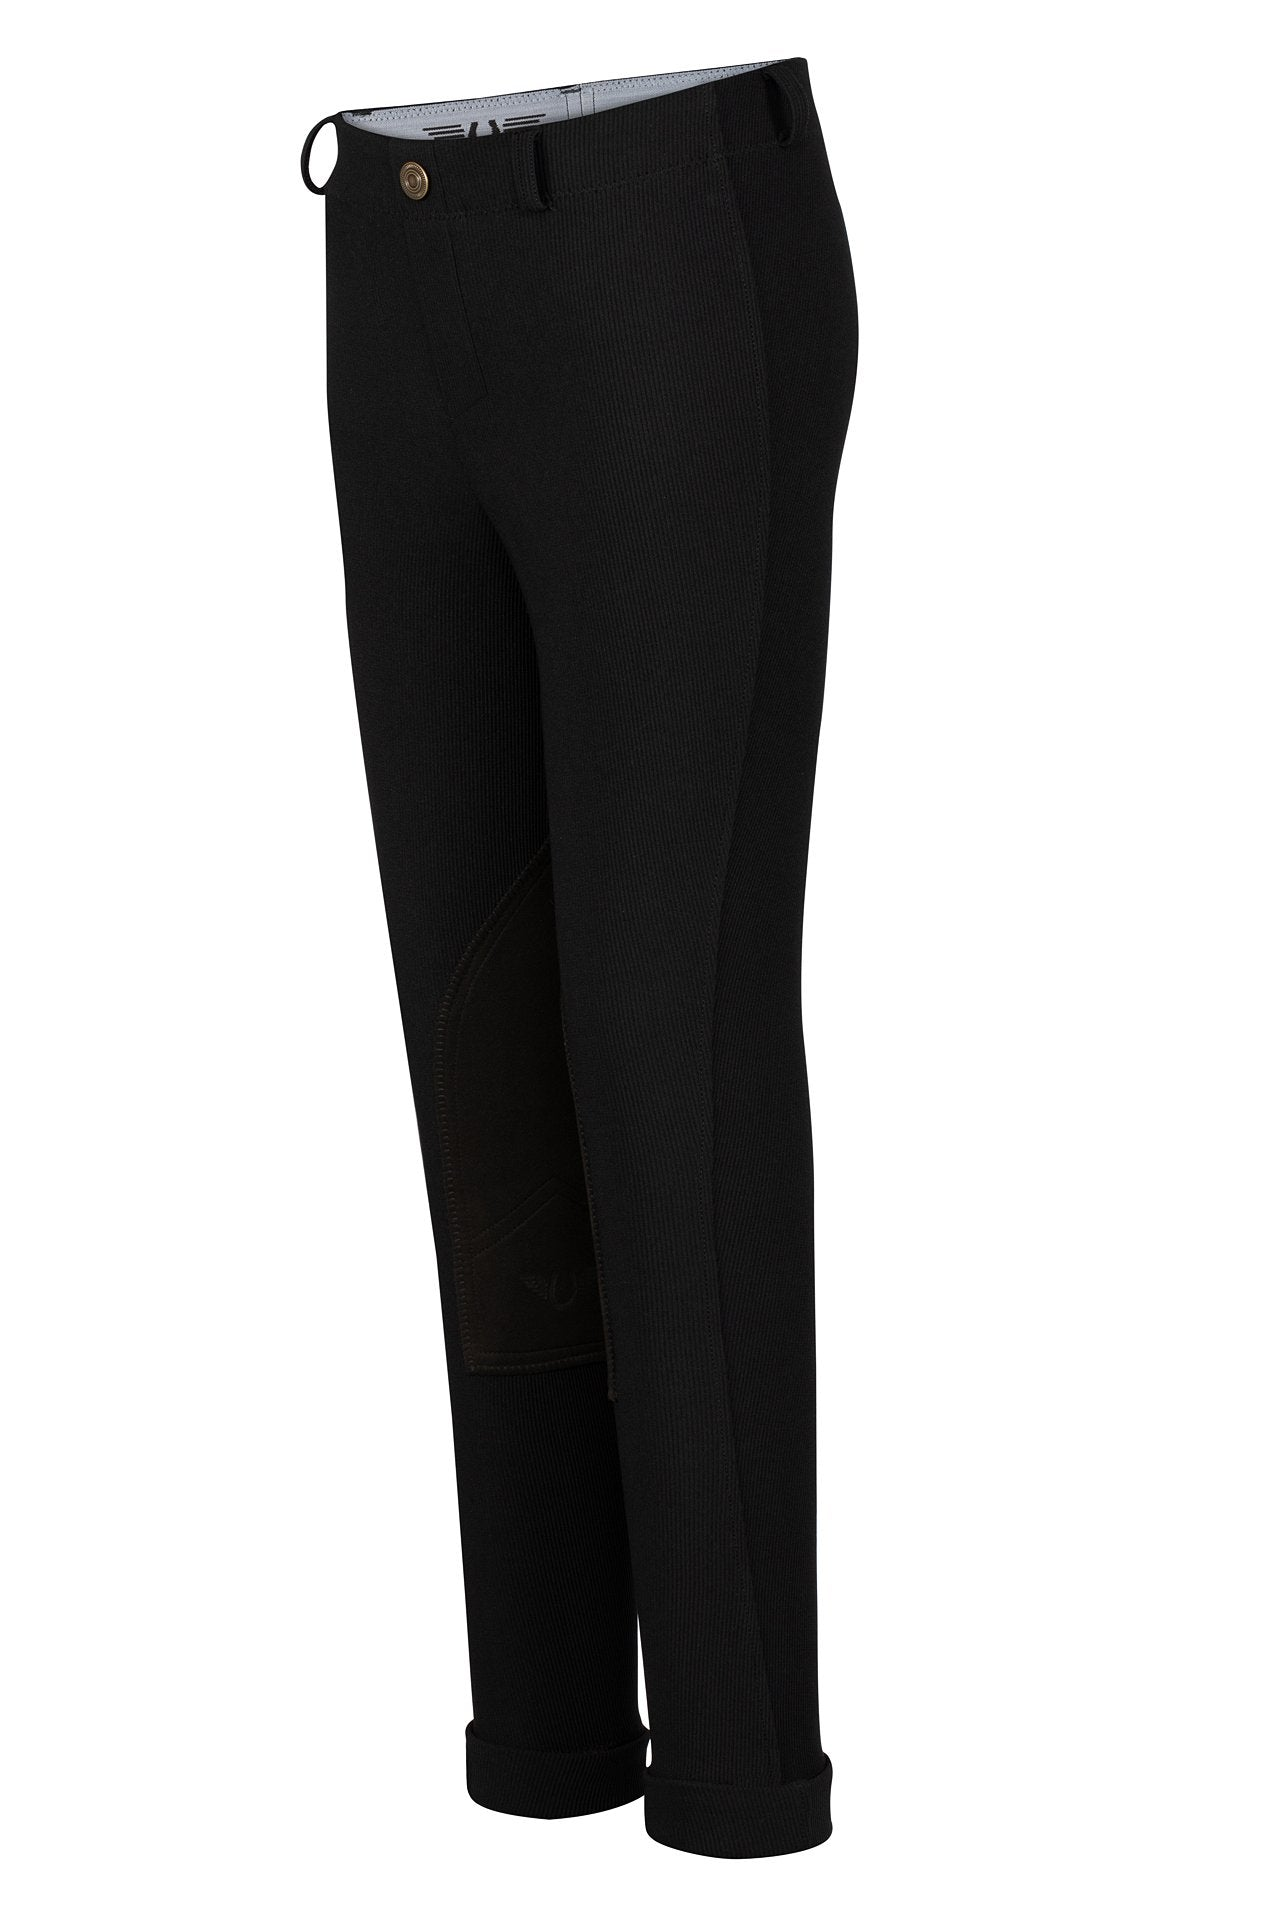 Children's Ribb Lowrise Pull-On Jodhpurs - TuffRider - Breeches.com